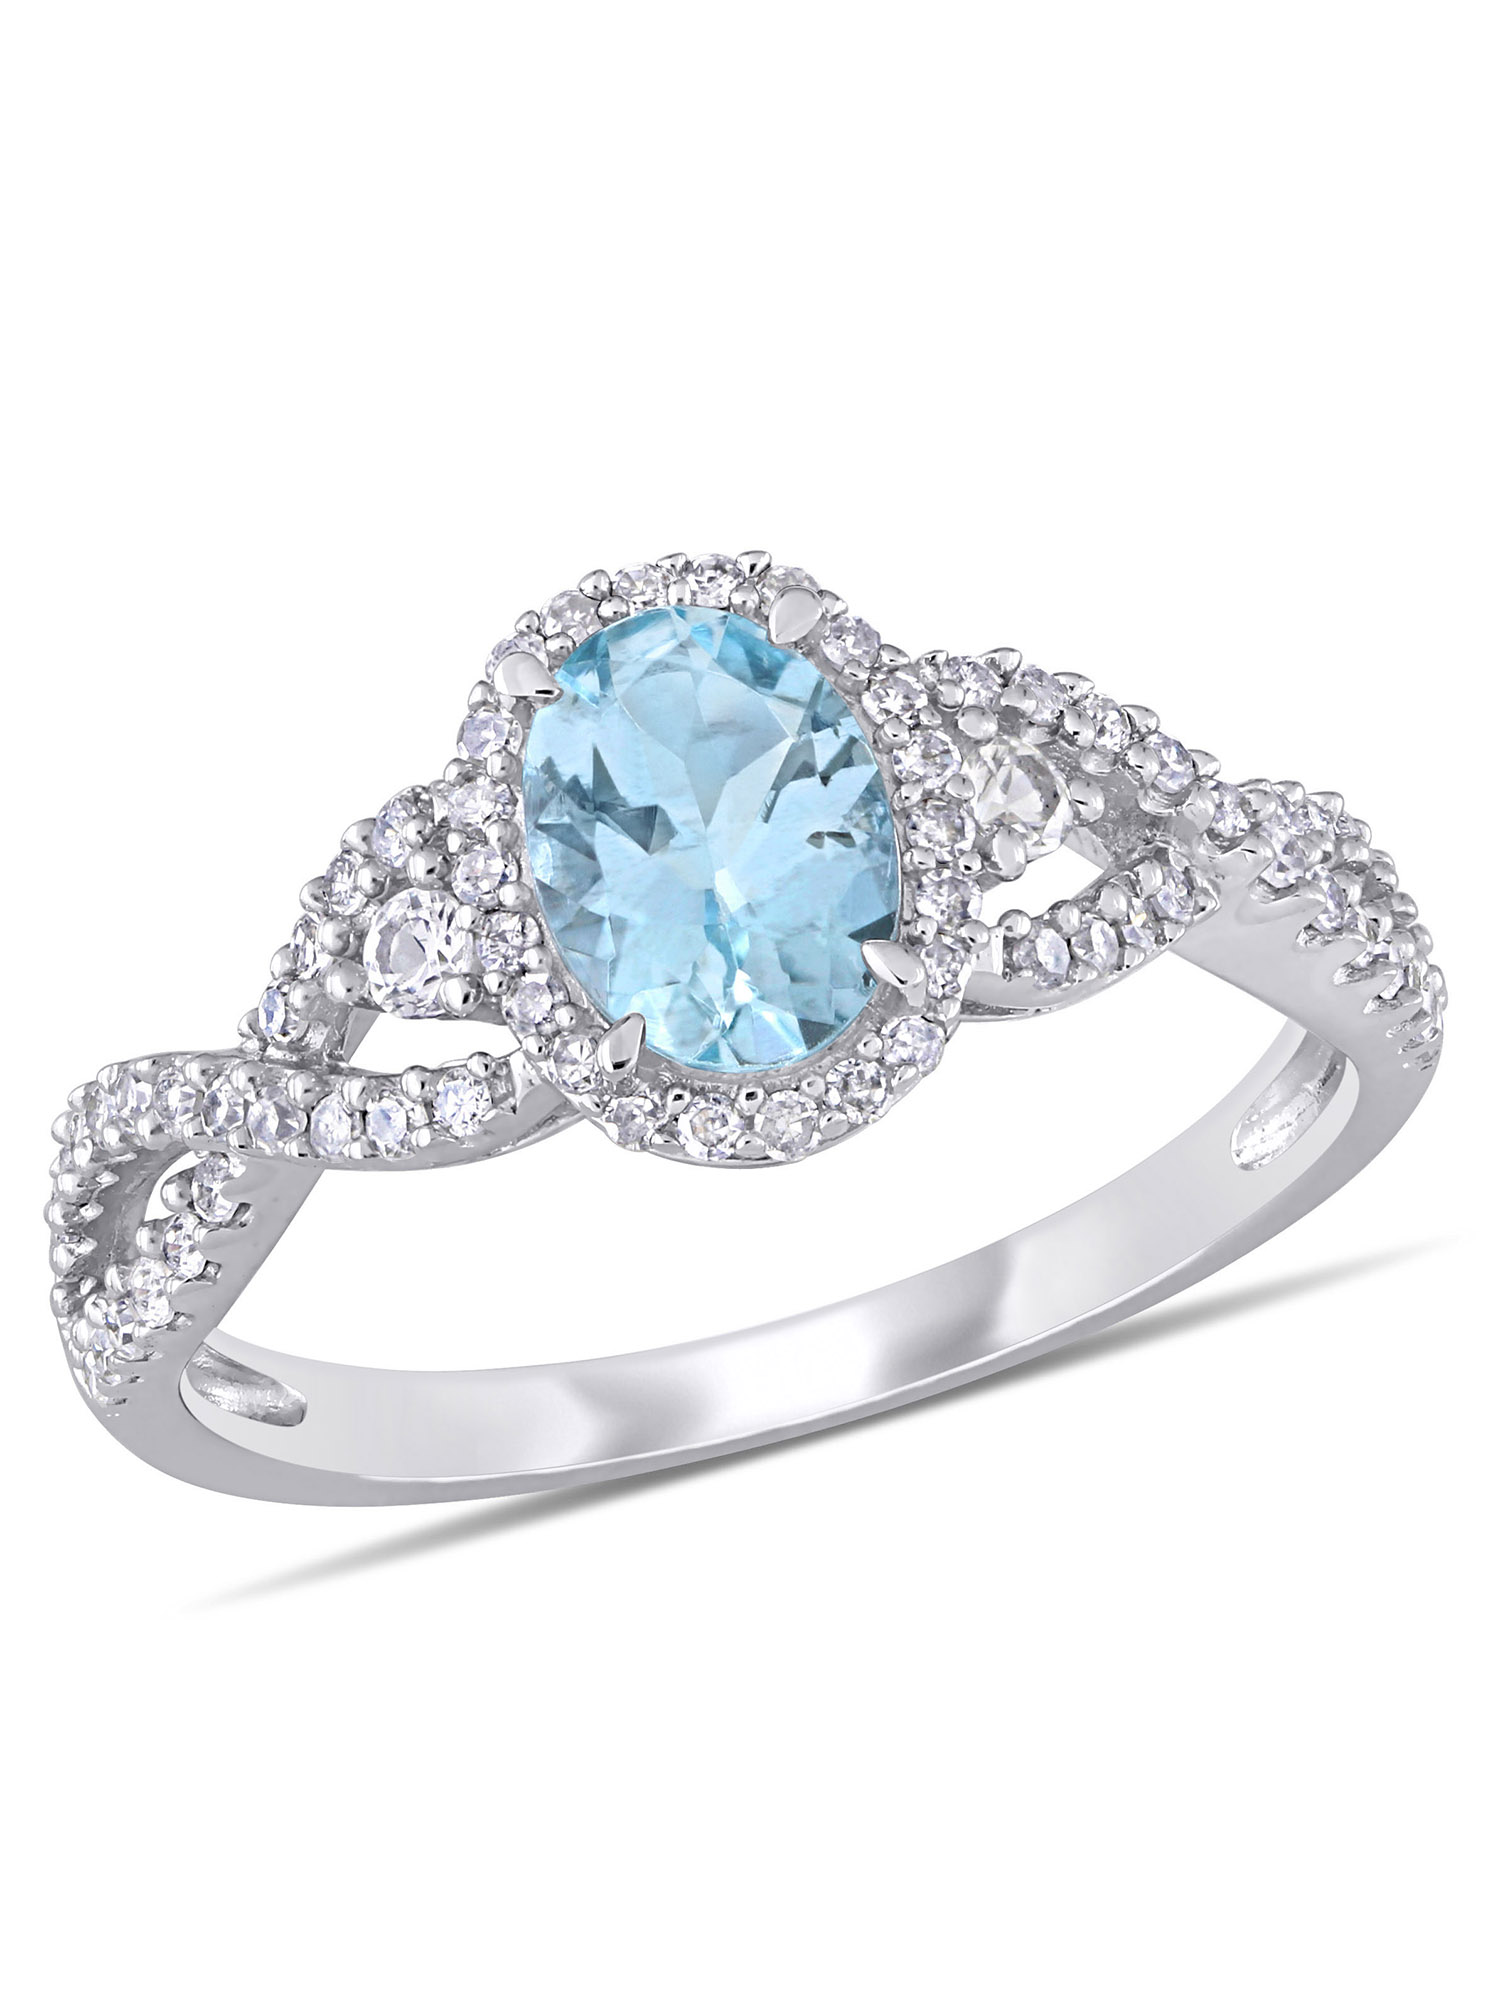 Tangelo 5/8 Carat T.G.W. Aquamarine and White Sapphire and 1/3 Carat T.W. Diamond 10k White Gold Engagement Ring